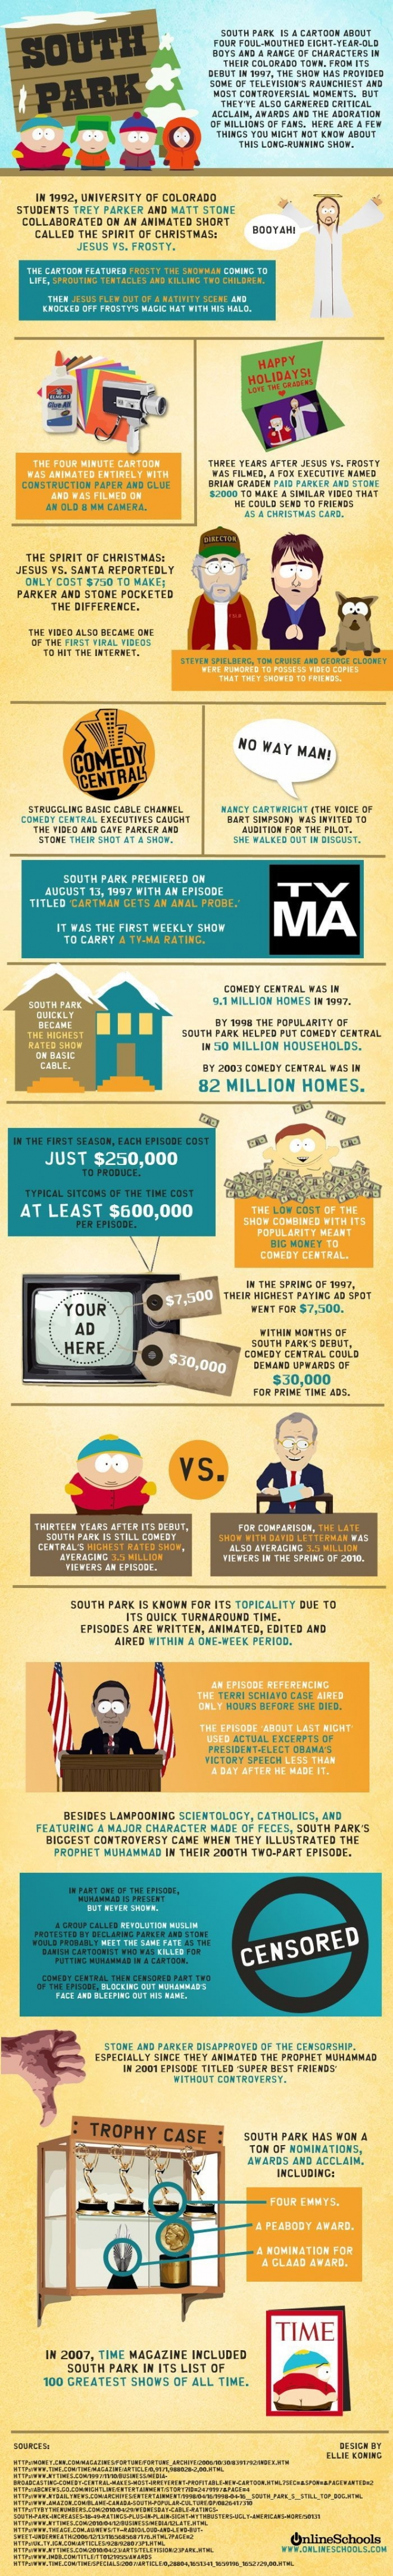 South Park infographic